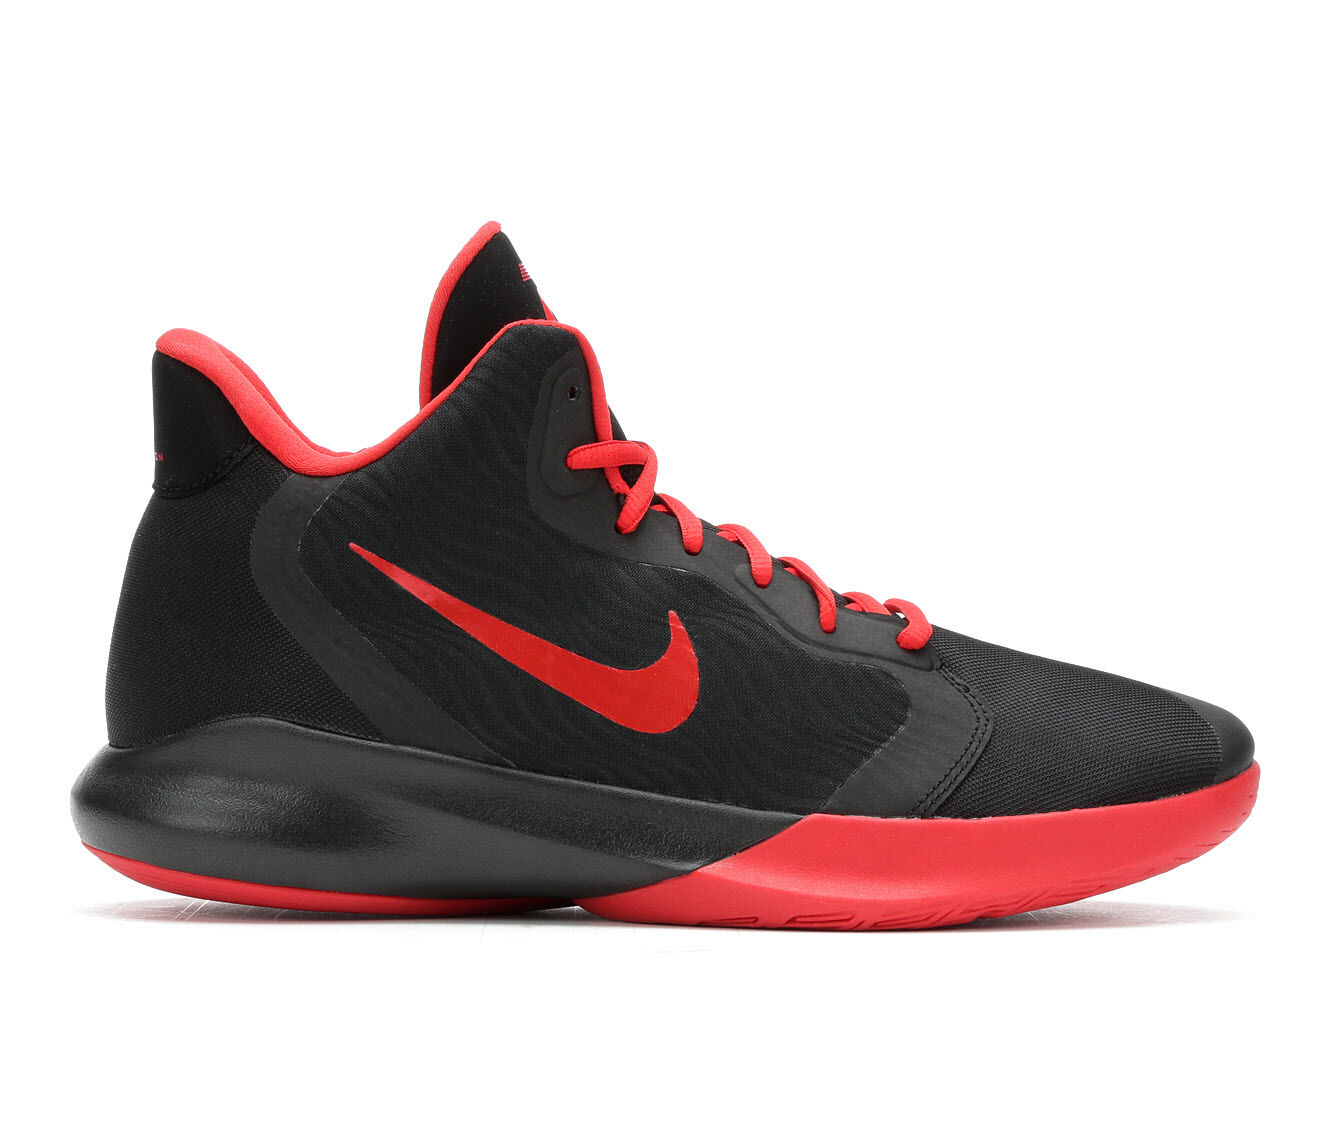 Factory Outlet Men's Nike Precision III Basketball Shoes Blk/Red/Wht 001